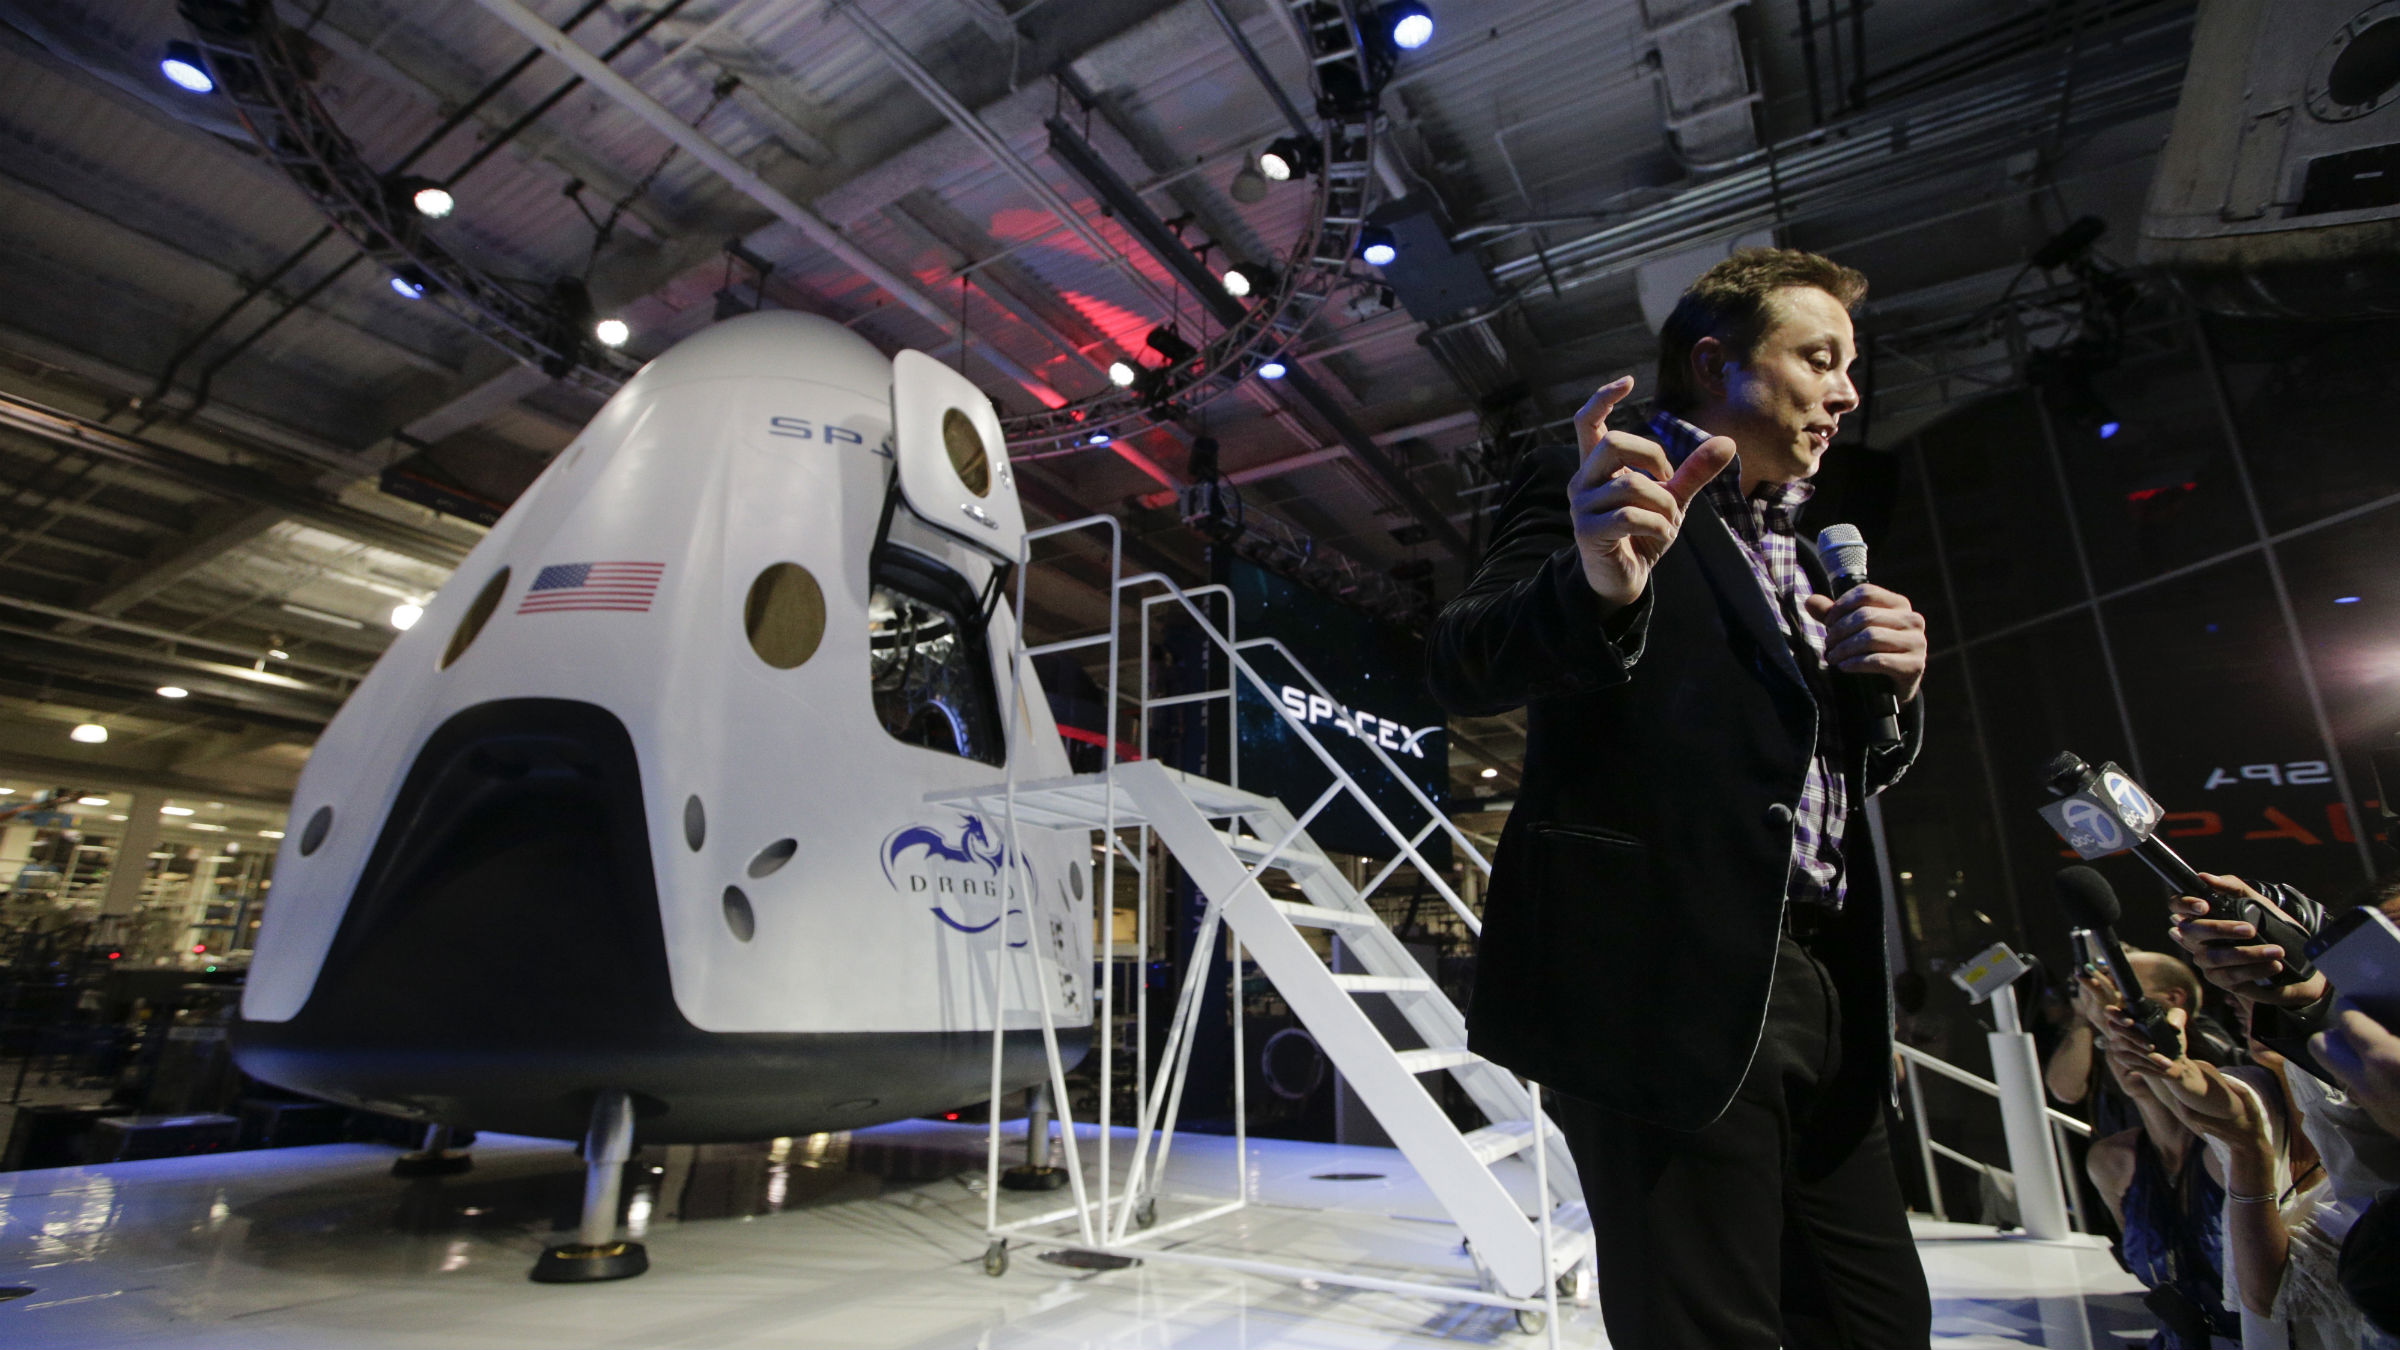 CEO of SpaceX reveals new Dragon V2 spaceship